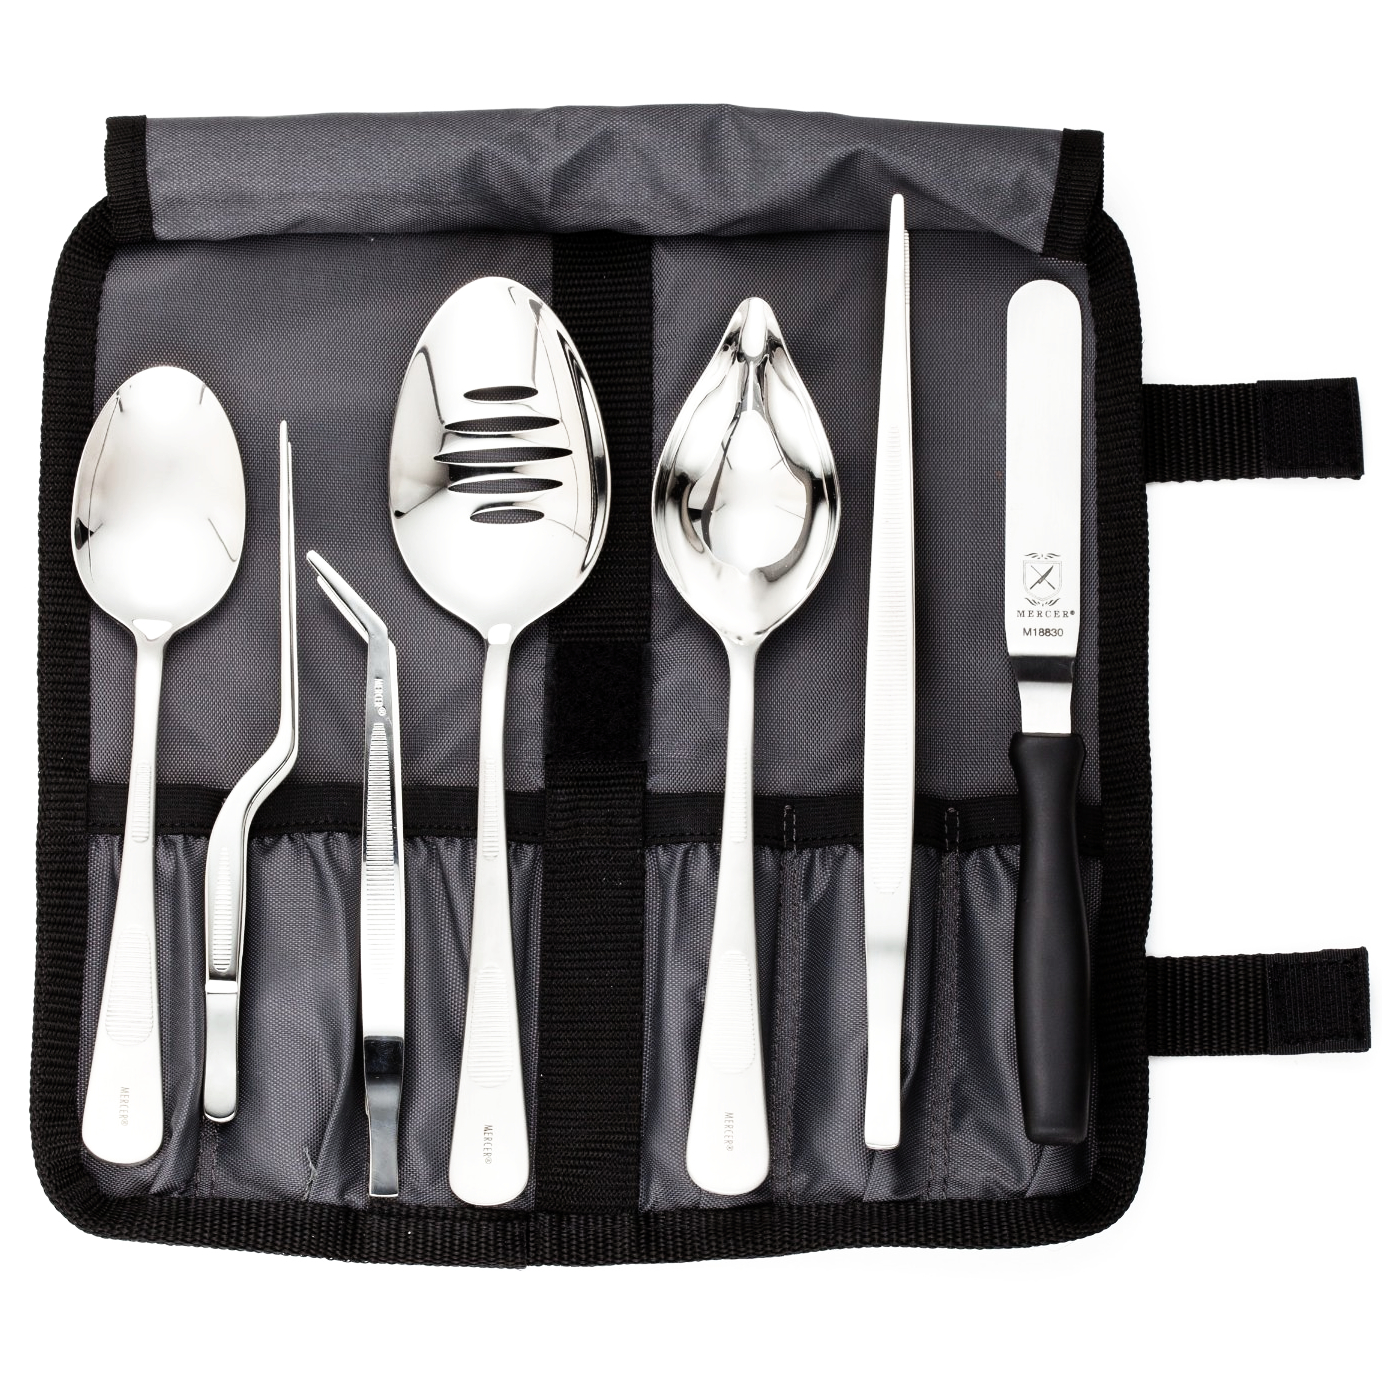 Mercer Stainless Steel 8 Piece Plating Kit with Storage Roll